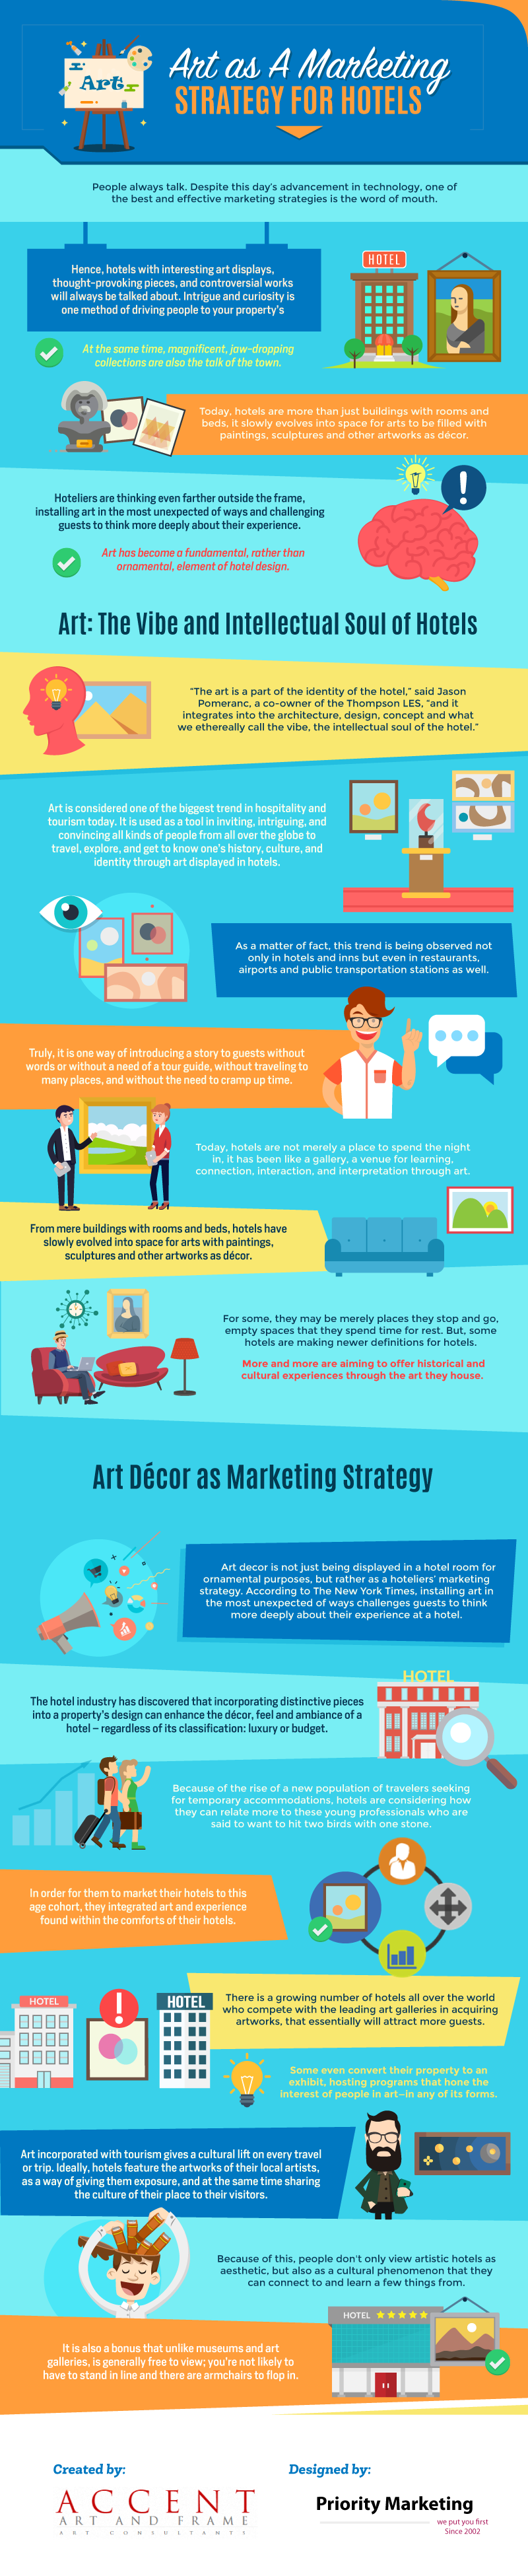 How Hotels Use Art as a Marketing Weapon - Infographic